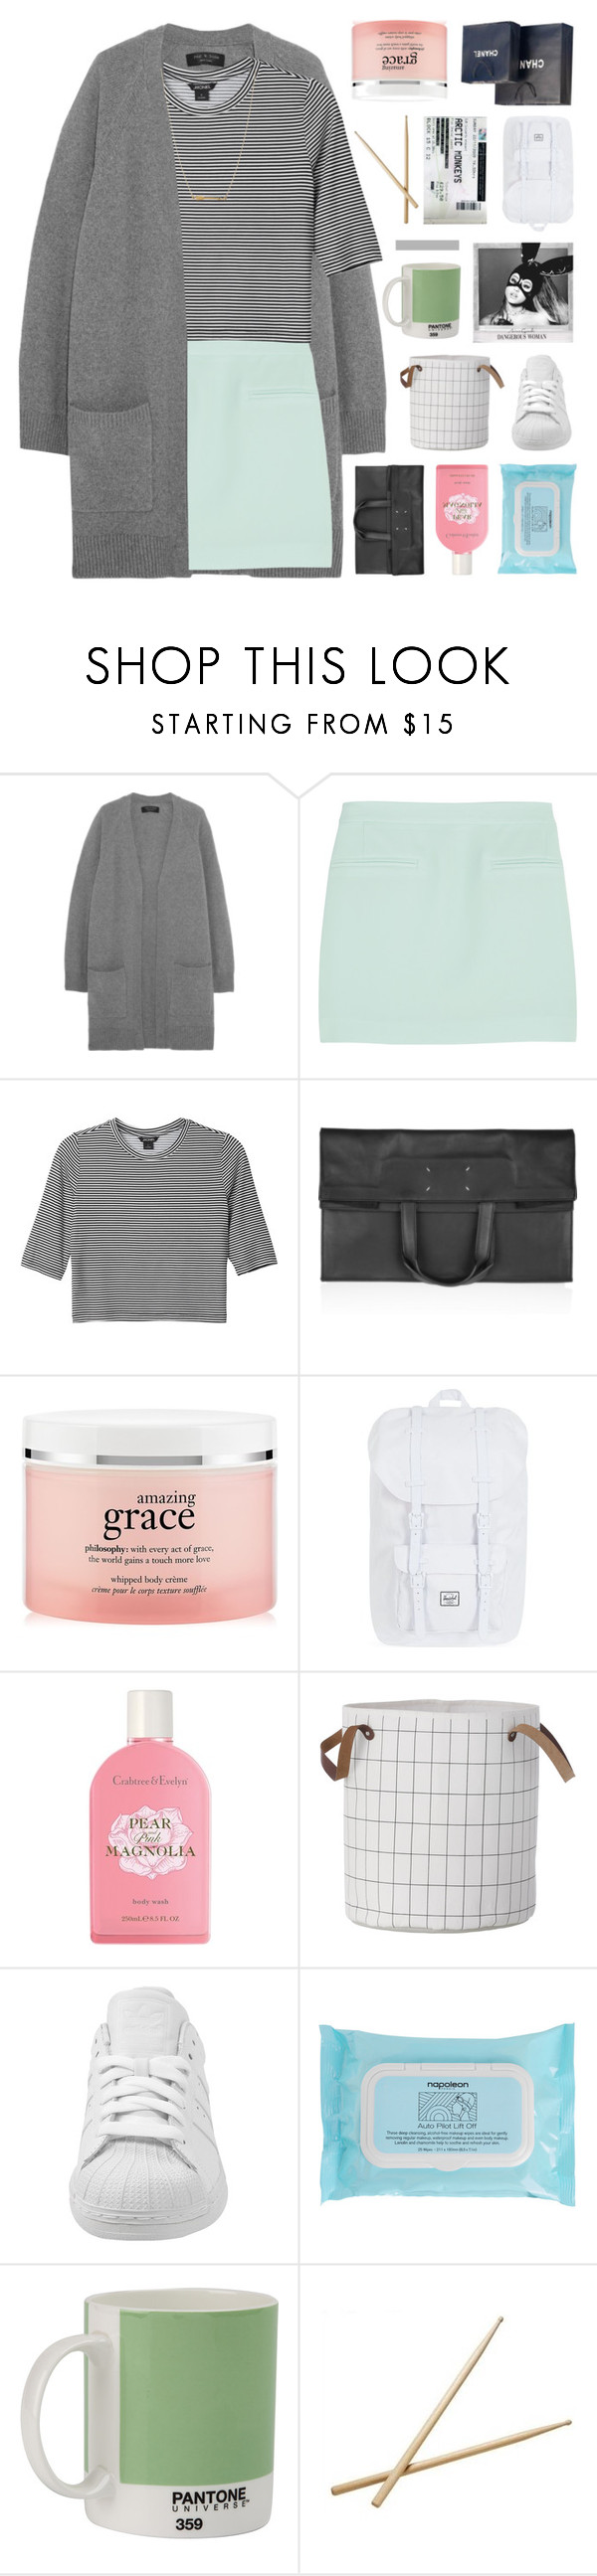 """""""GOLD DIGGER — GUESS WHO?"""" by sabad ❤ liked on Polyvore featuring rag & bone, T By Alexander Wang, Monki, Maison Margiela, philosophy, Herschel Supply Co., Crabtree & Evelyn, adidas, Napoleon Perdis and W2 Products"""